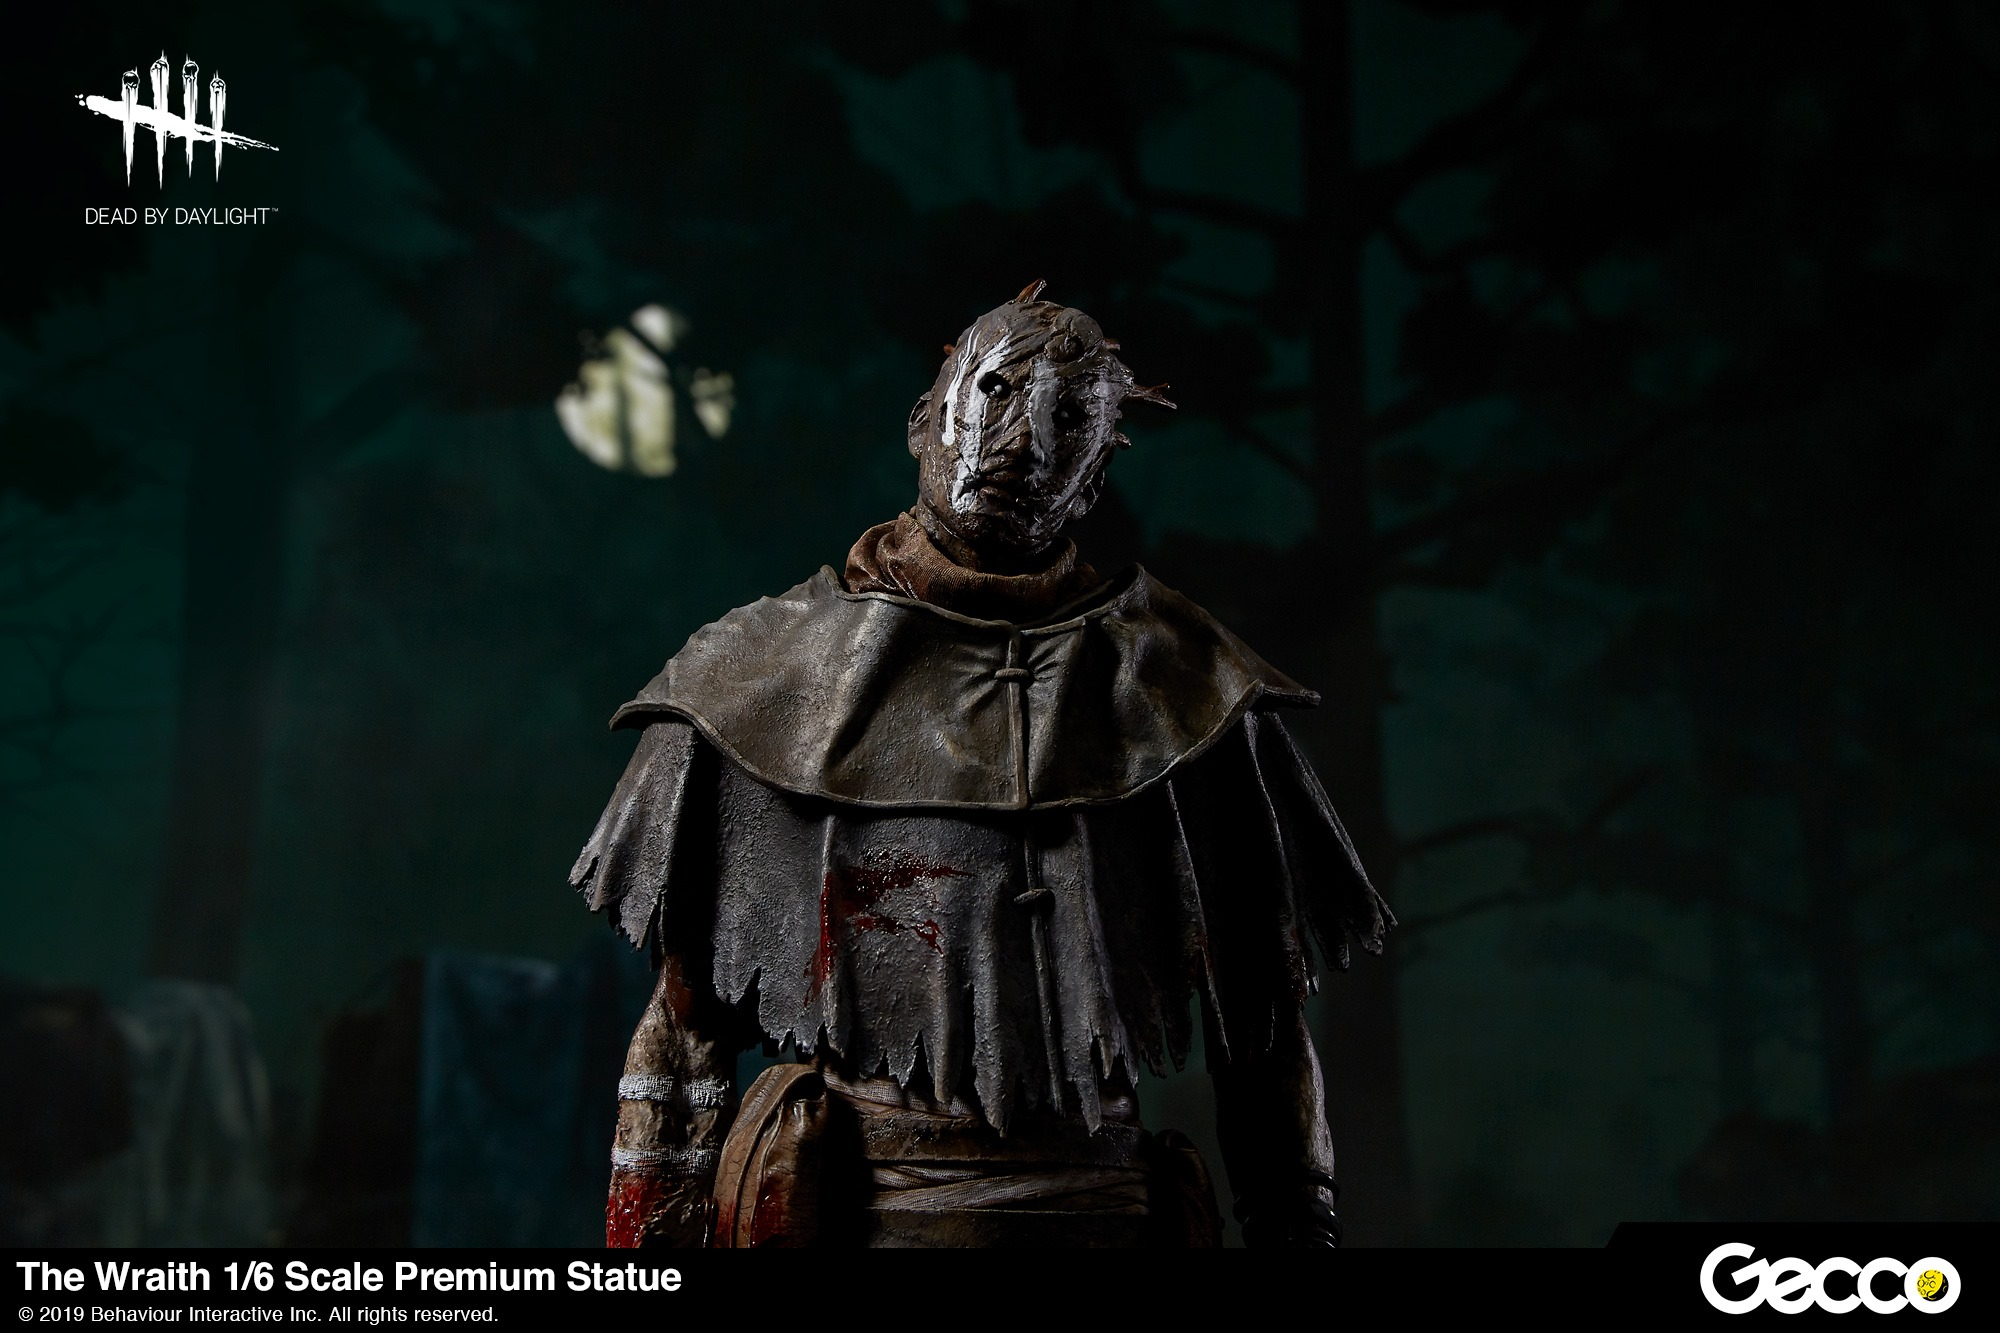 Dead by Daylight, The Wraith 1/6 Scale Statue